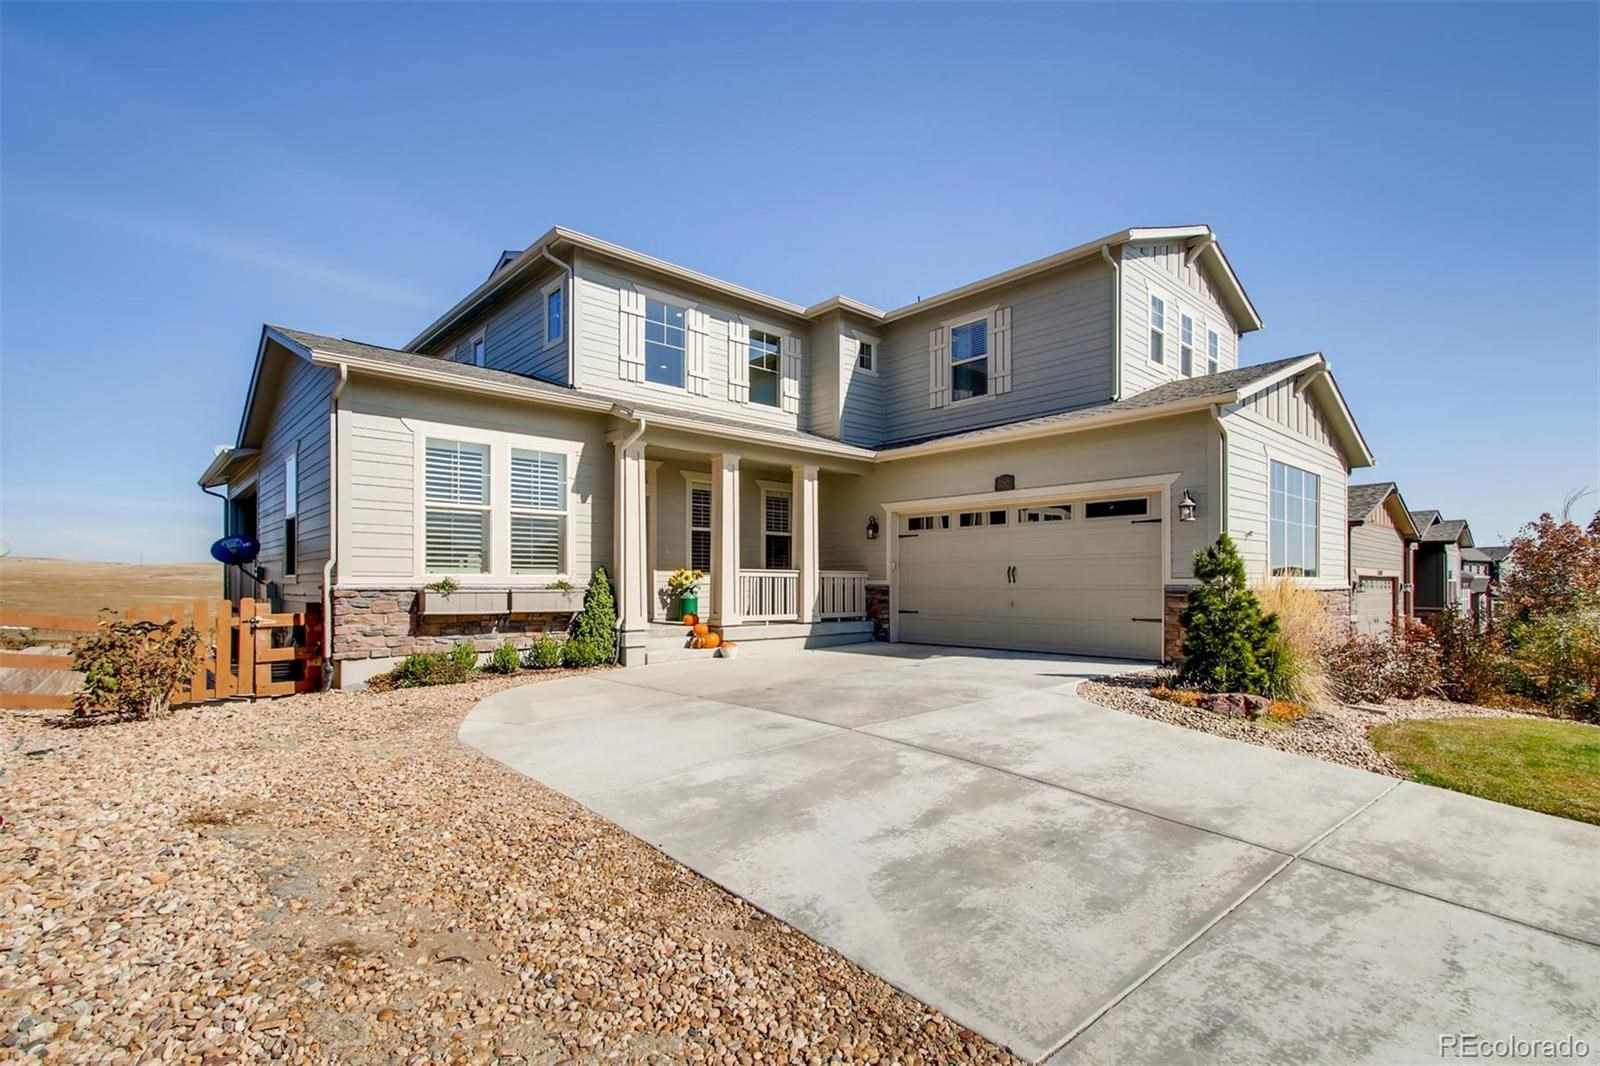 MLS# 8727284 - 1 - 15429 W 95th Place, Arvada, CO 80007